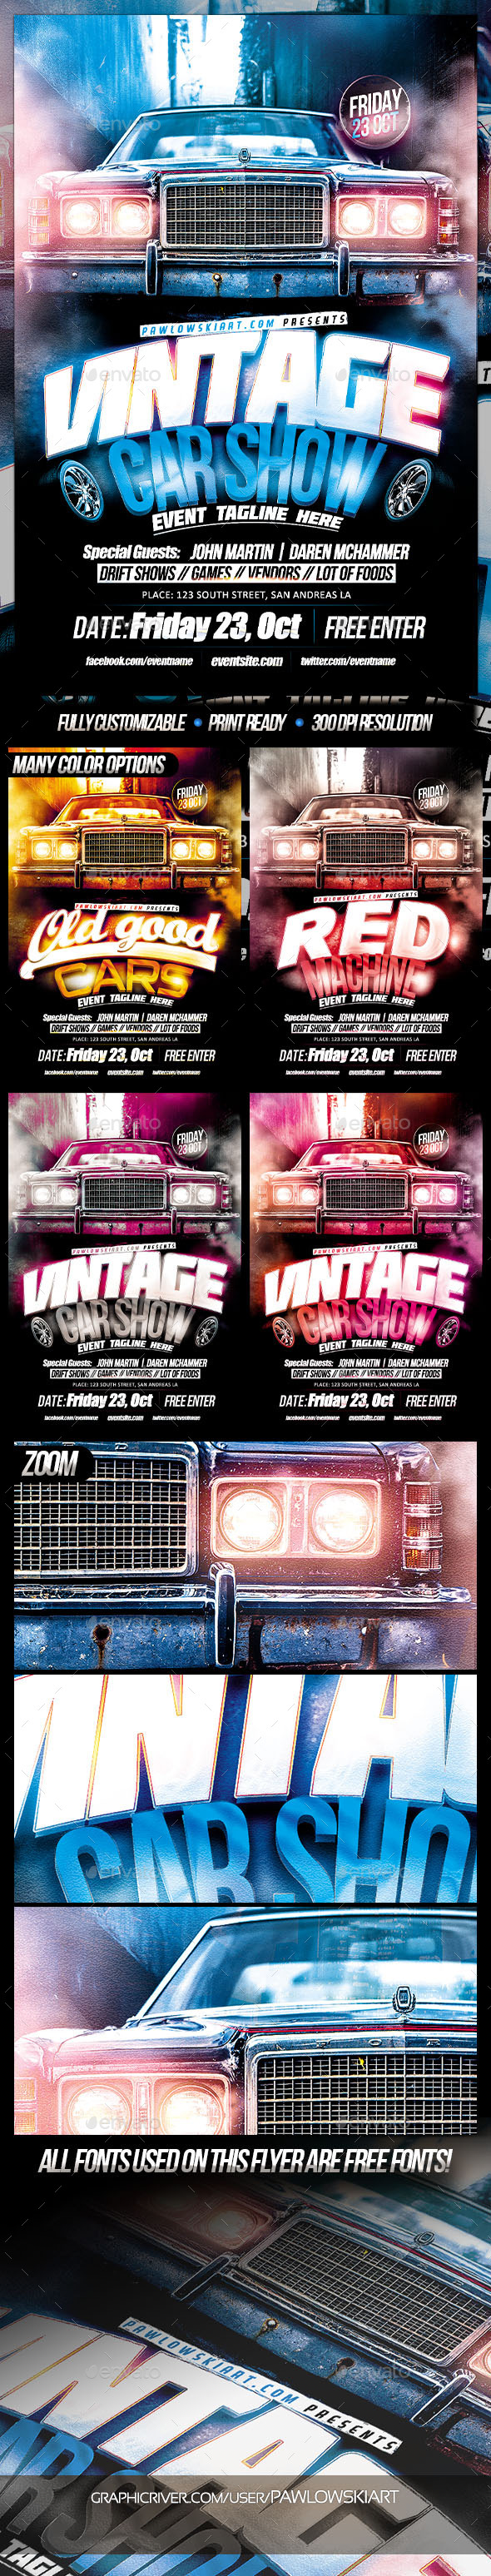 Vintage Car Show Event Flyer Template - Miscellaneous Events